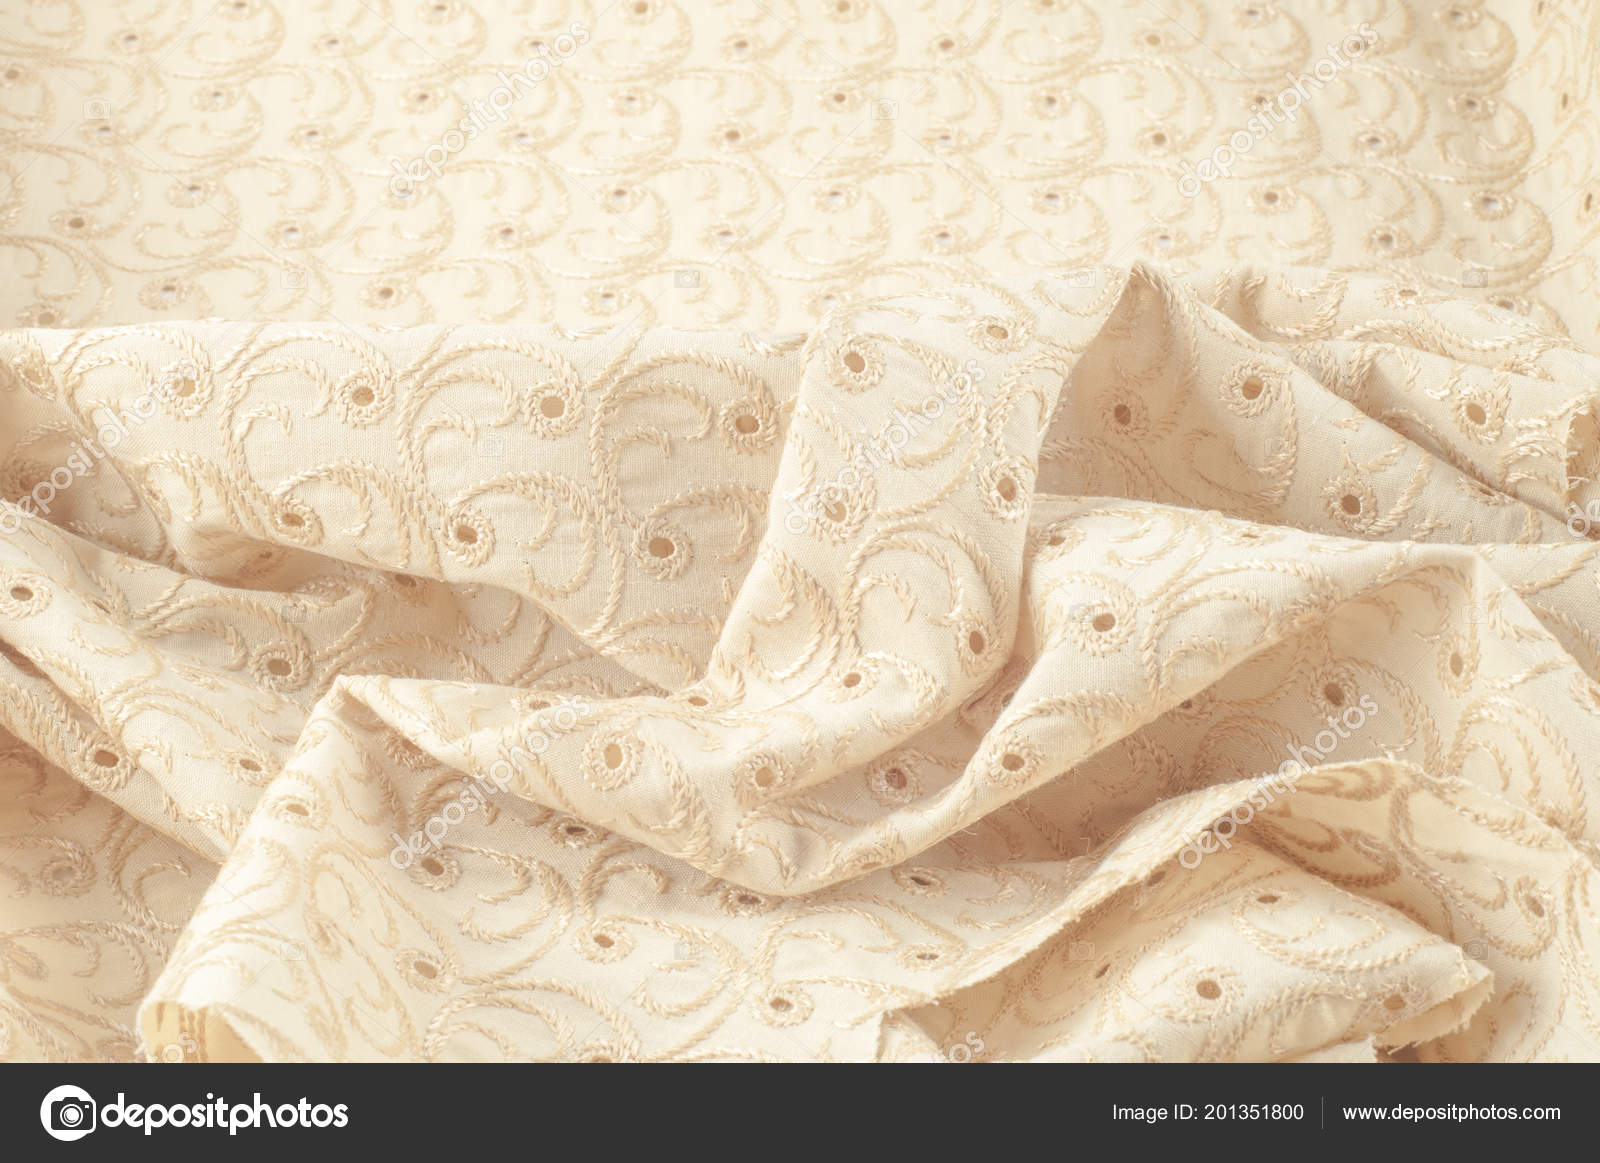 Texture Background Fabric Beige Fabric Punctured Circles Beige